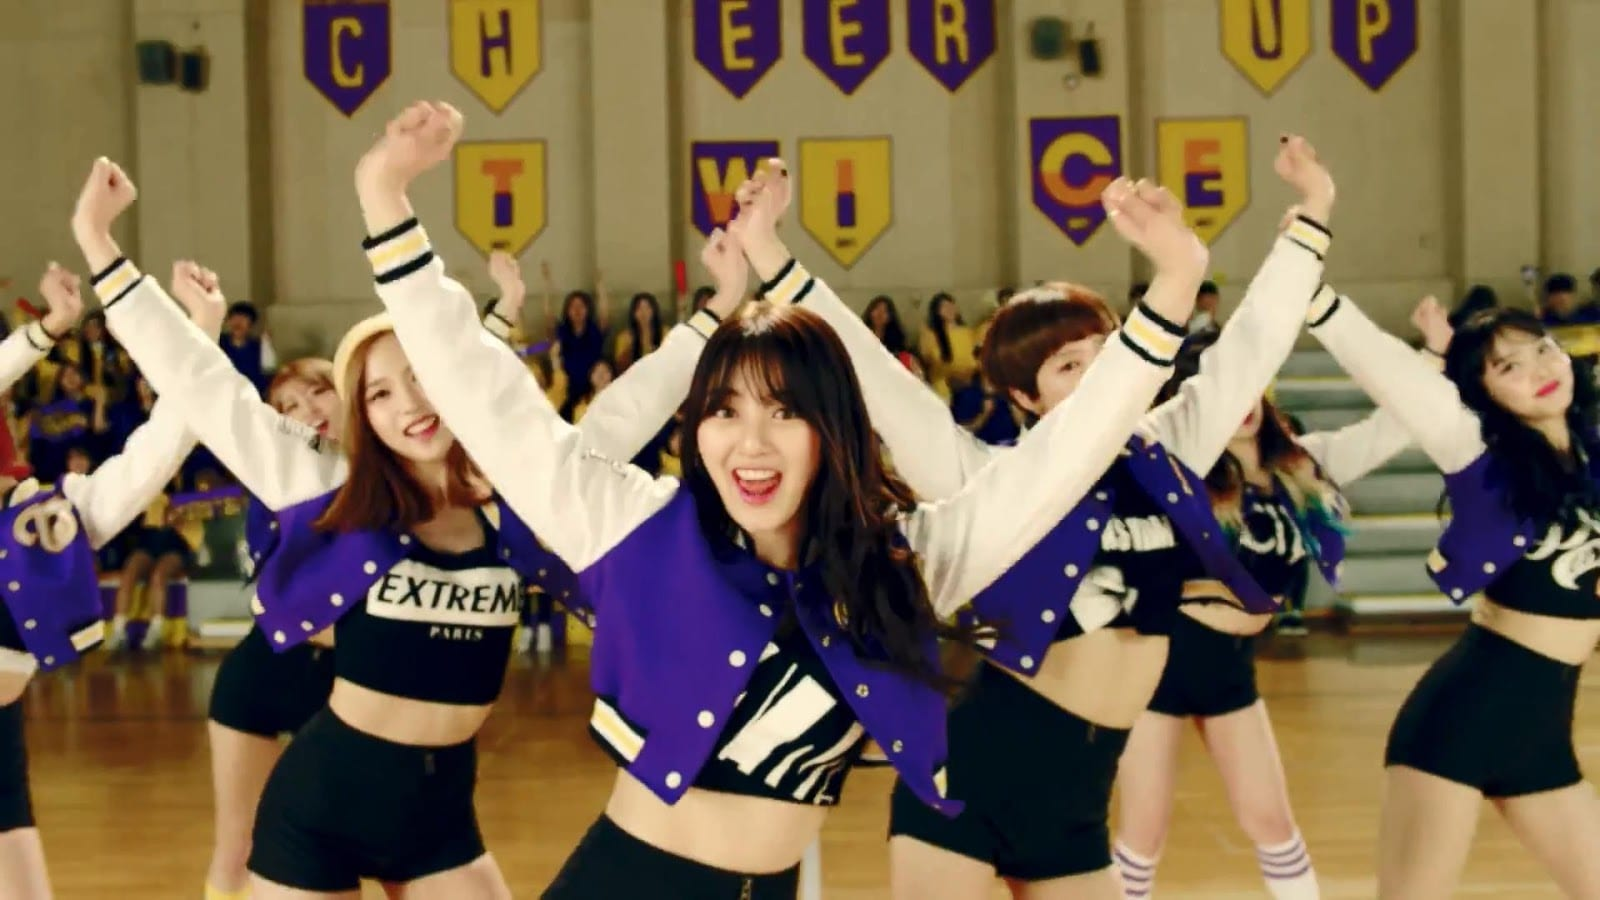 10 Awesome Kpop Dances To Learn This Summer